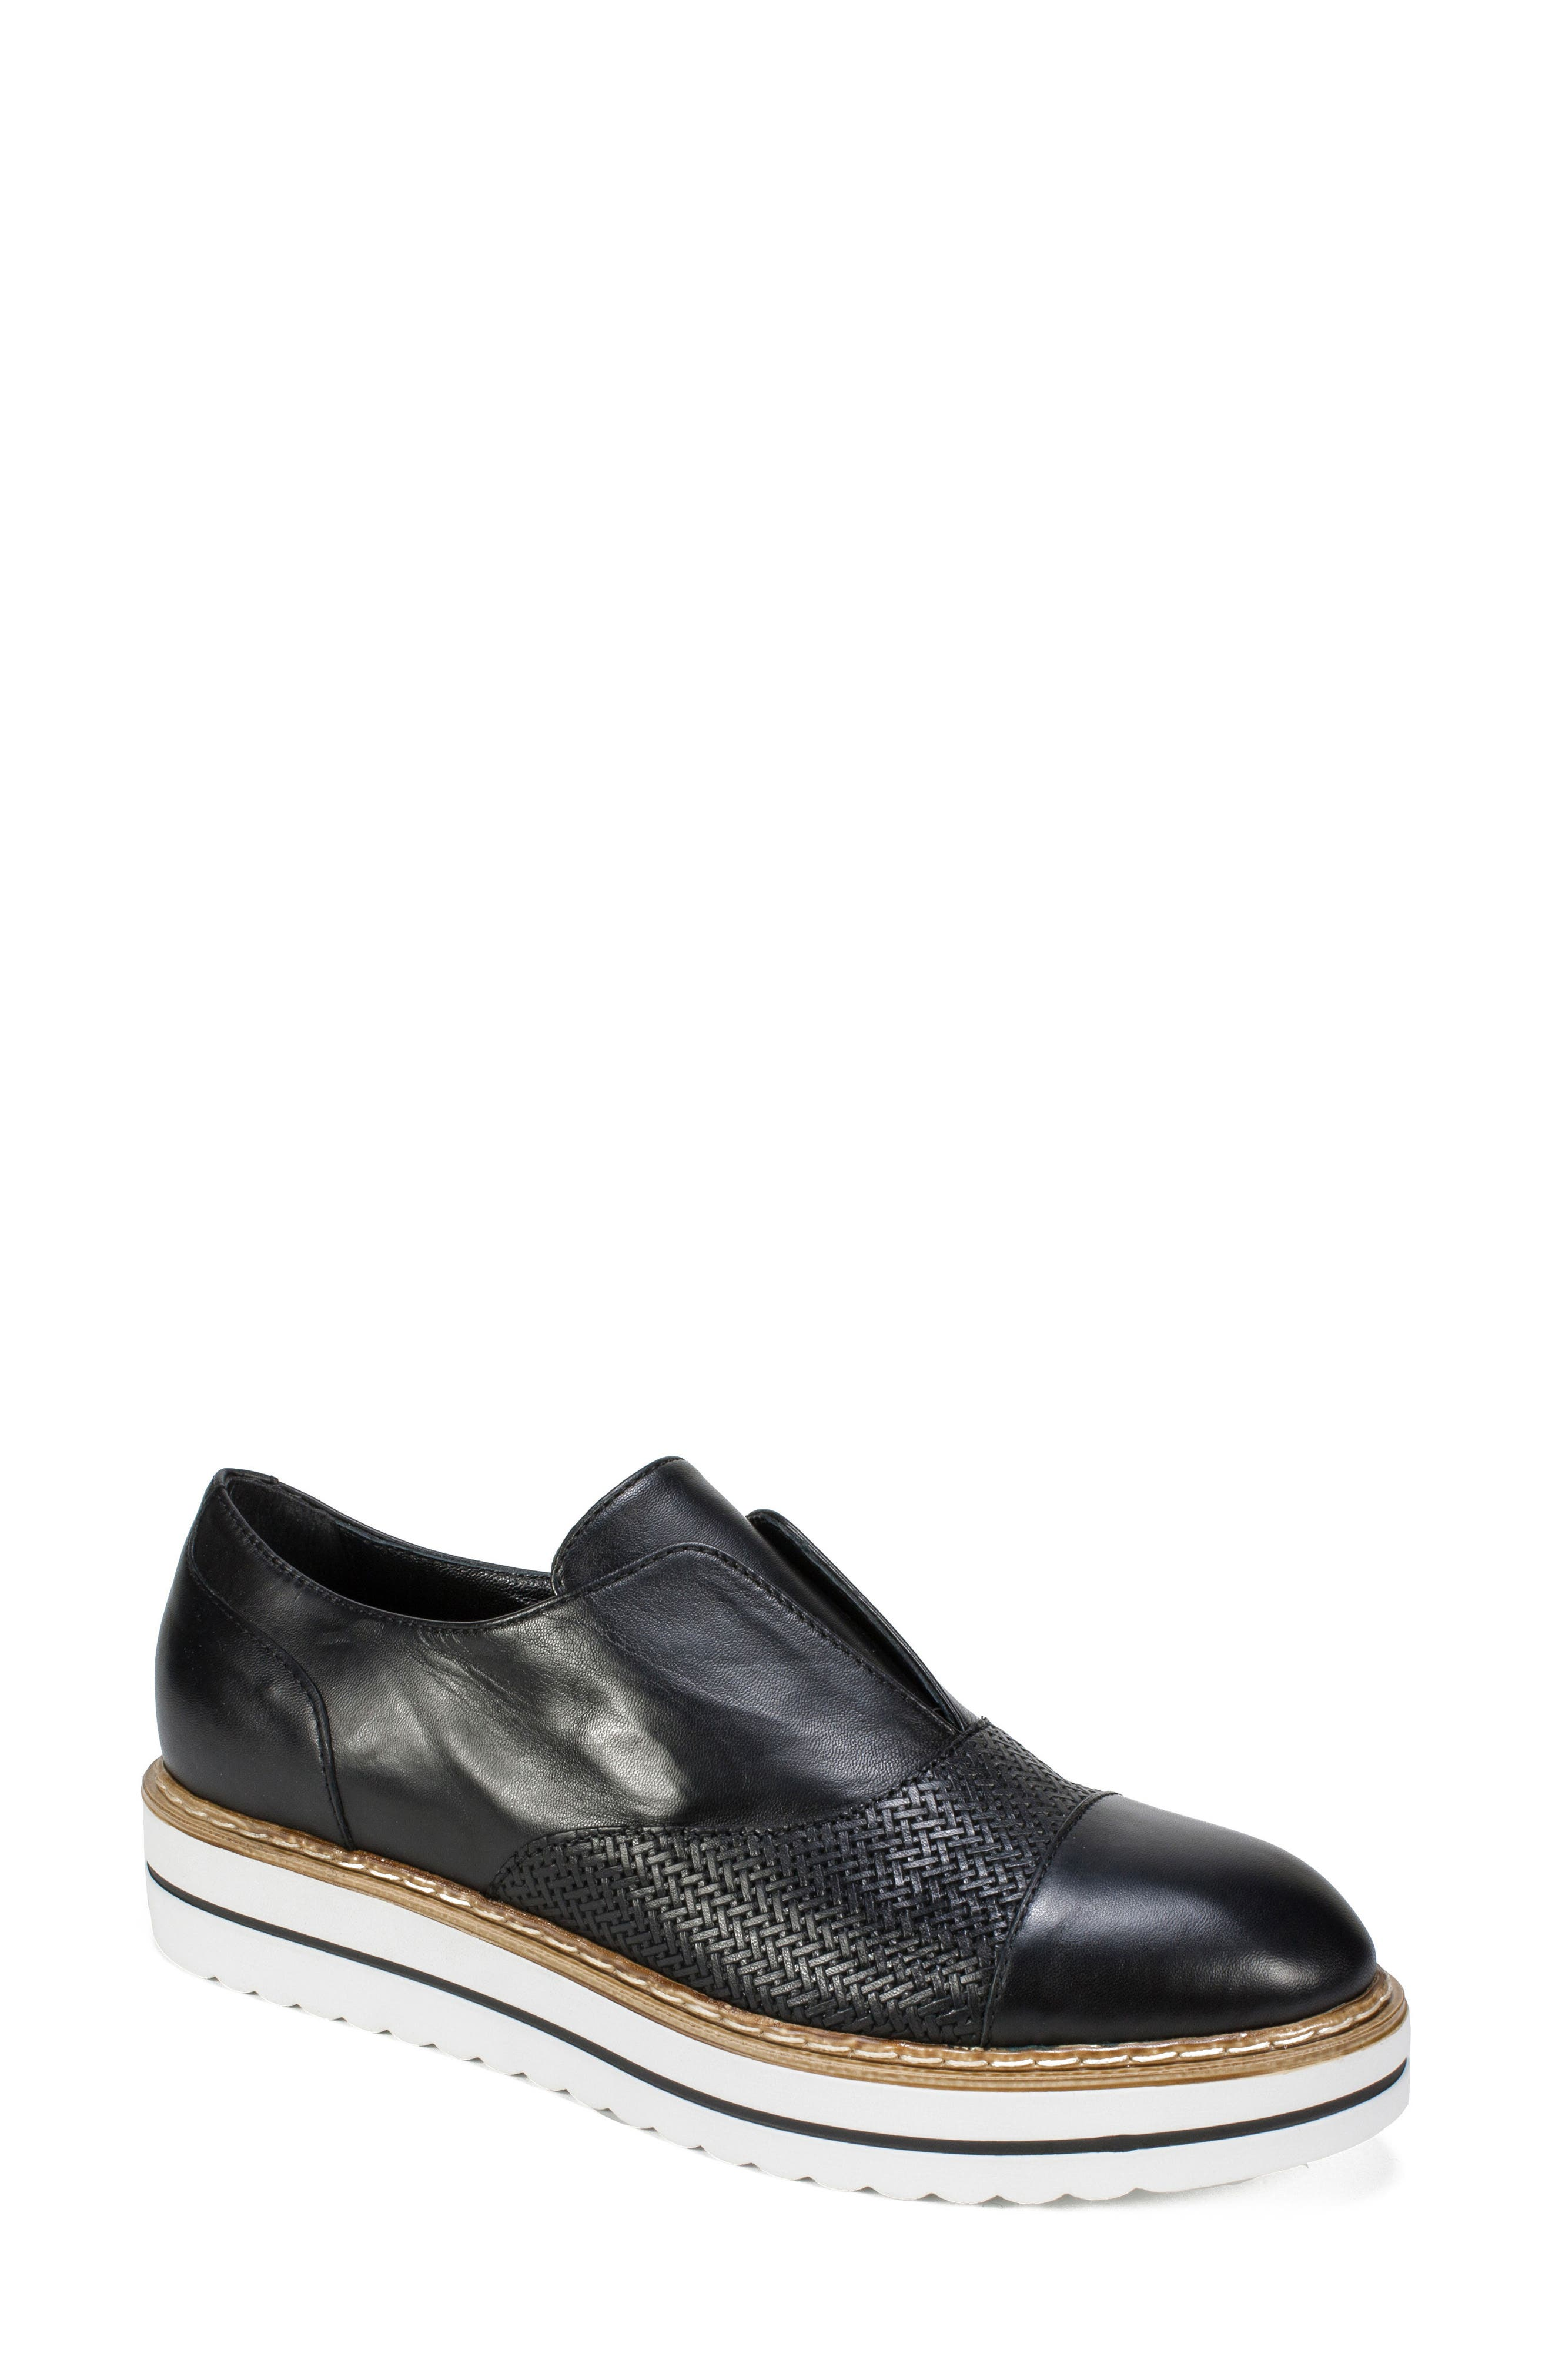 Bliss Loafer,                         Main,                         color, Black Leather